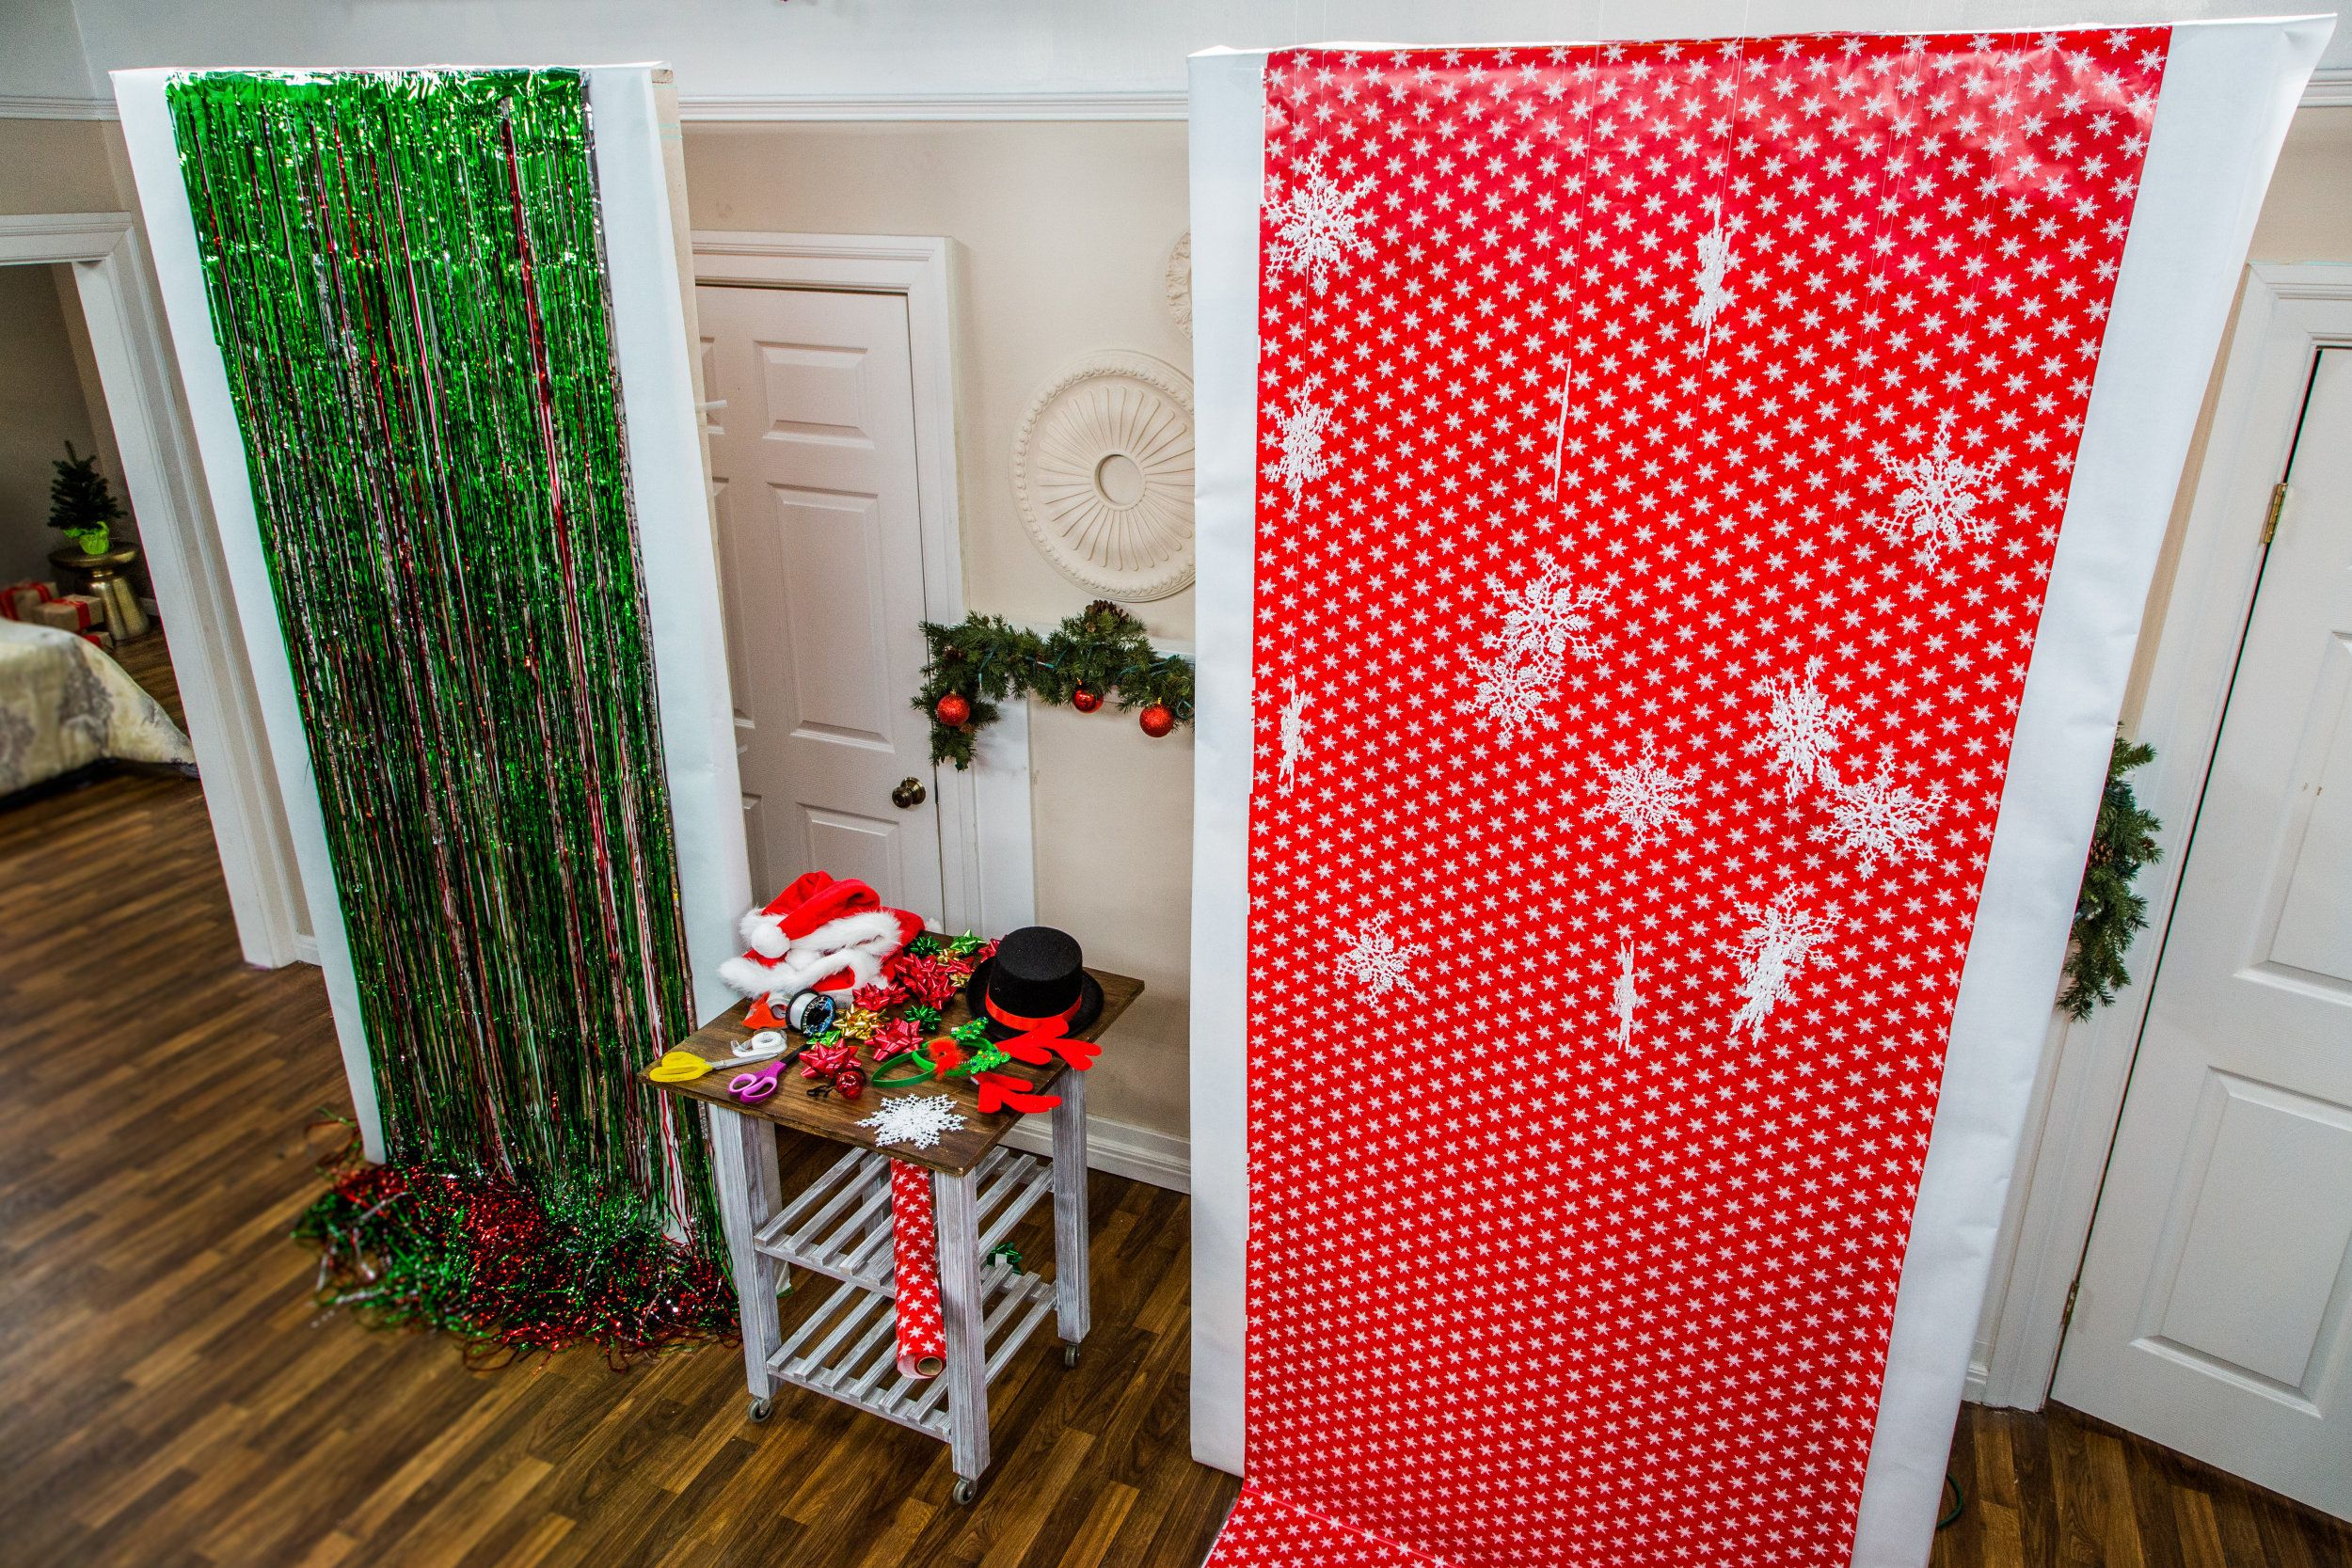 A diy from maria provenzano great idea pinterest holidays and box another wrapping paper from hobby lobby do it yourself another christmas photo booth backdrop ideas wrapping paper from hobby lobby solutioingenieria Image collections